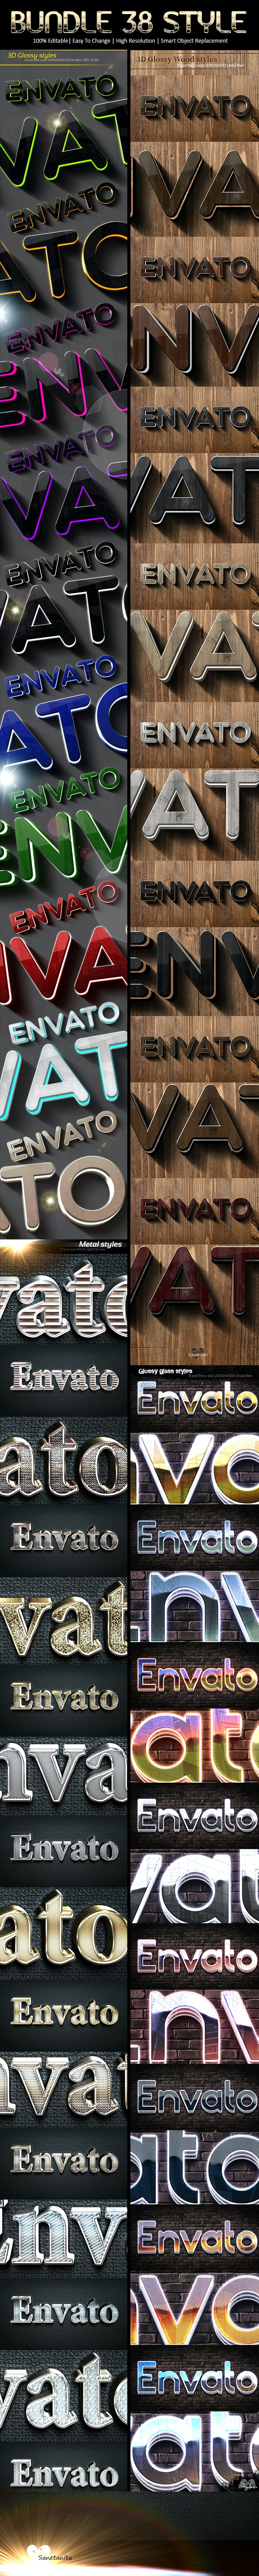 Bundle 3d Glossy Styles - Text Effects Styles